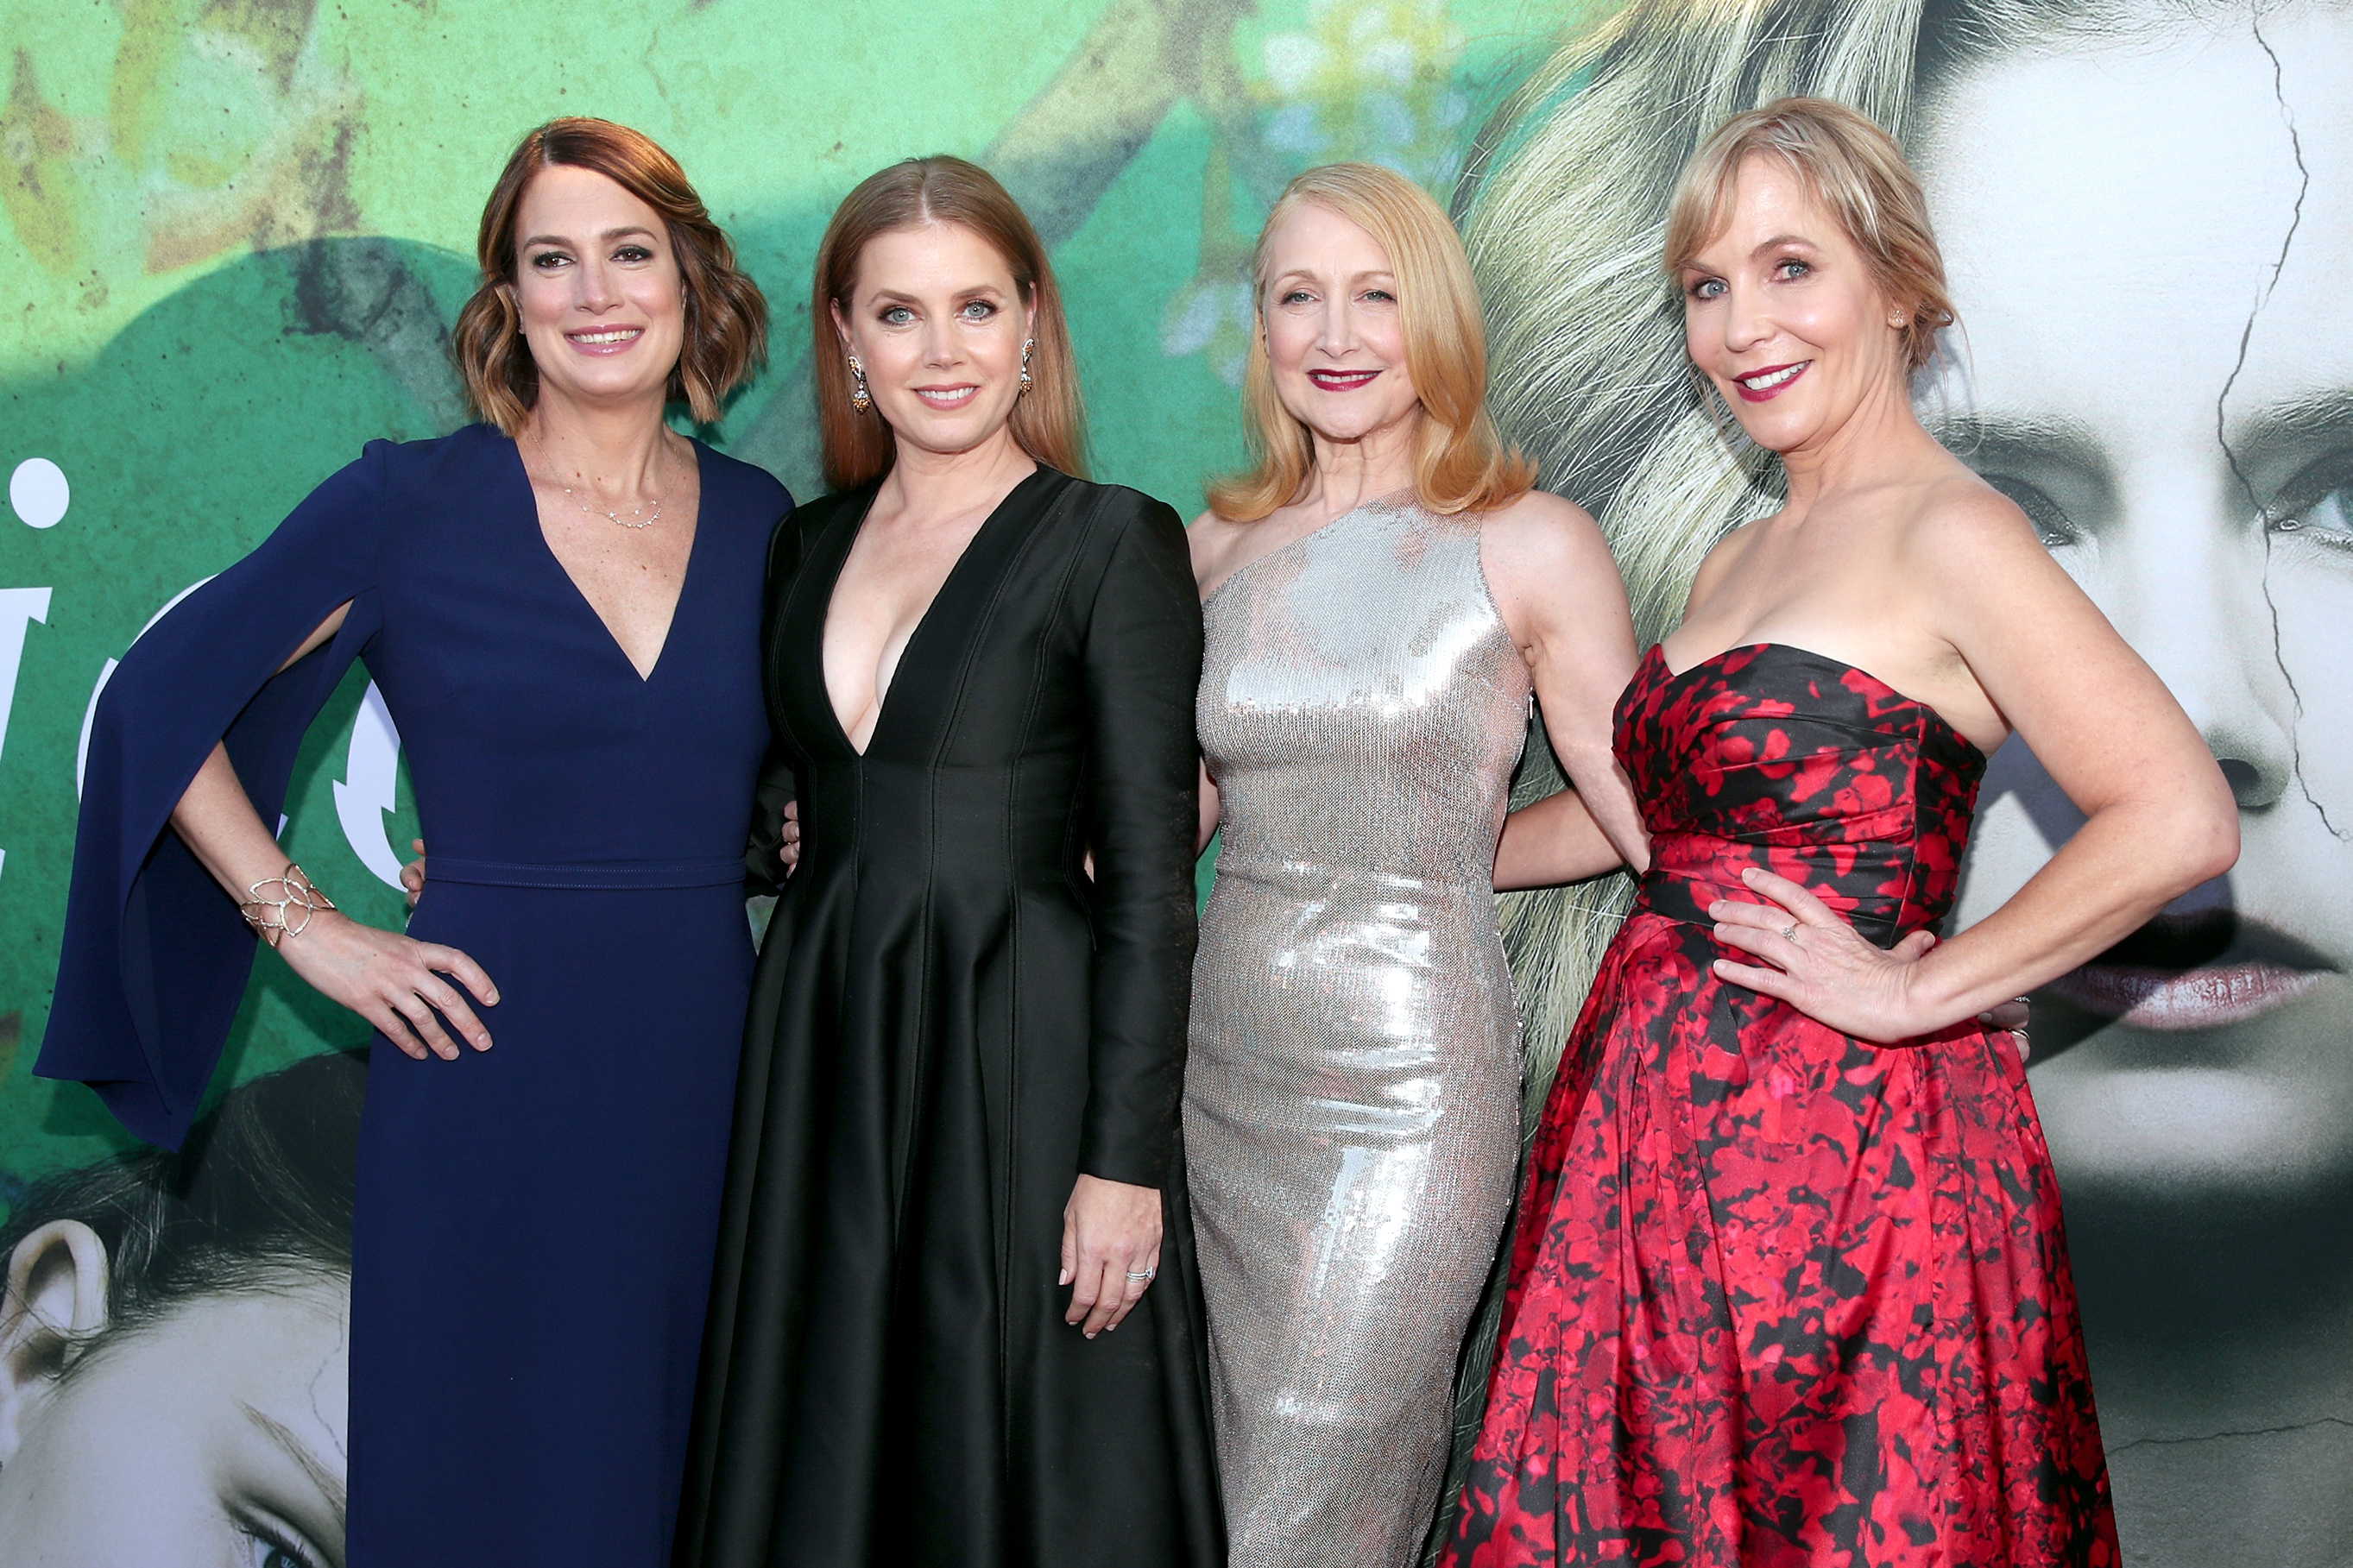 (L-R) Executive Producer/Author Gillian Flynn, Amy Adams, Patricia Clarkson, and Executive Producer/Creator Marti Noxon attend the premiere of HBO's 'Sharp Objects' at The Cinerama Dome on June 26, 2018 in Los Angeles, California.